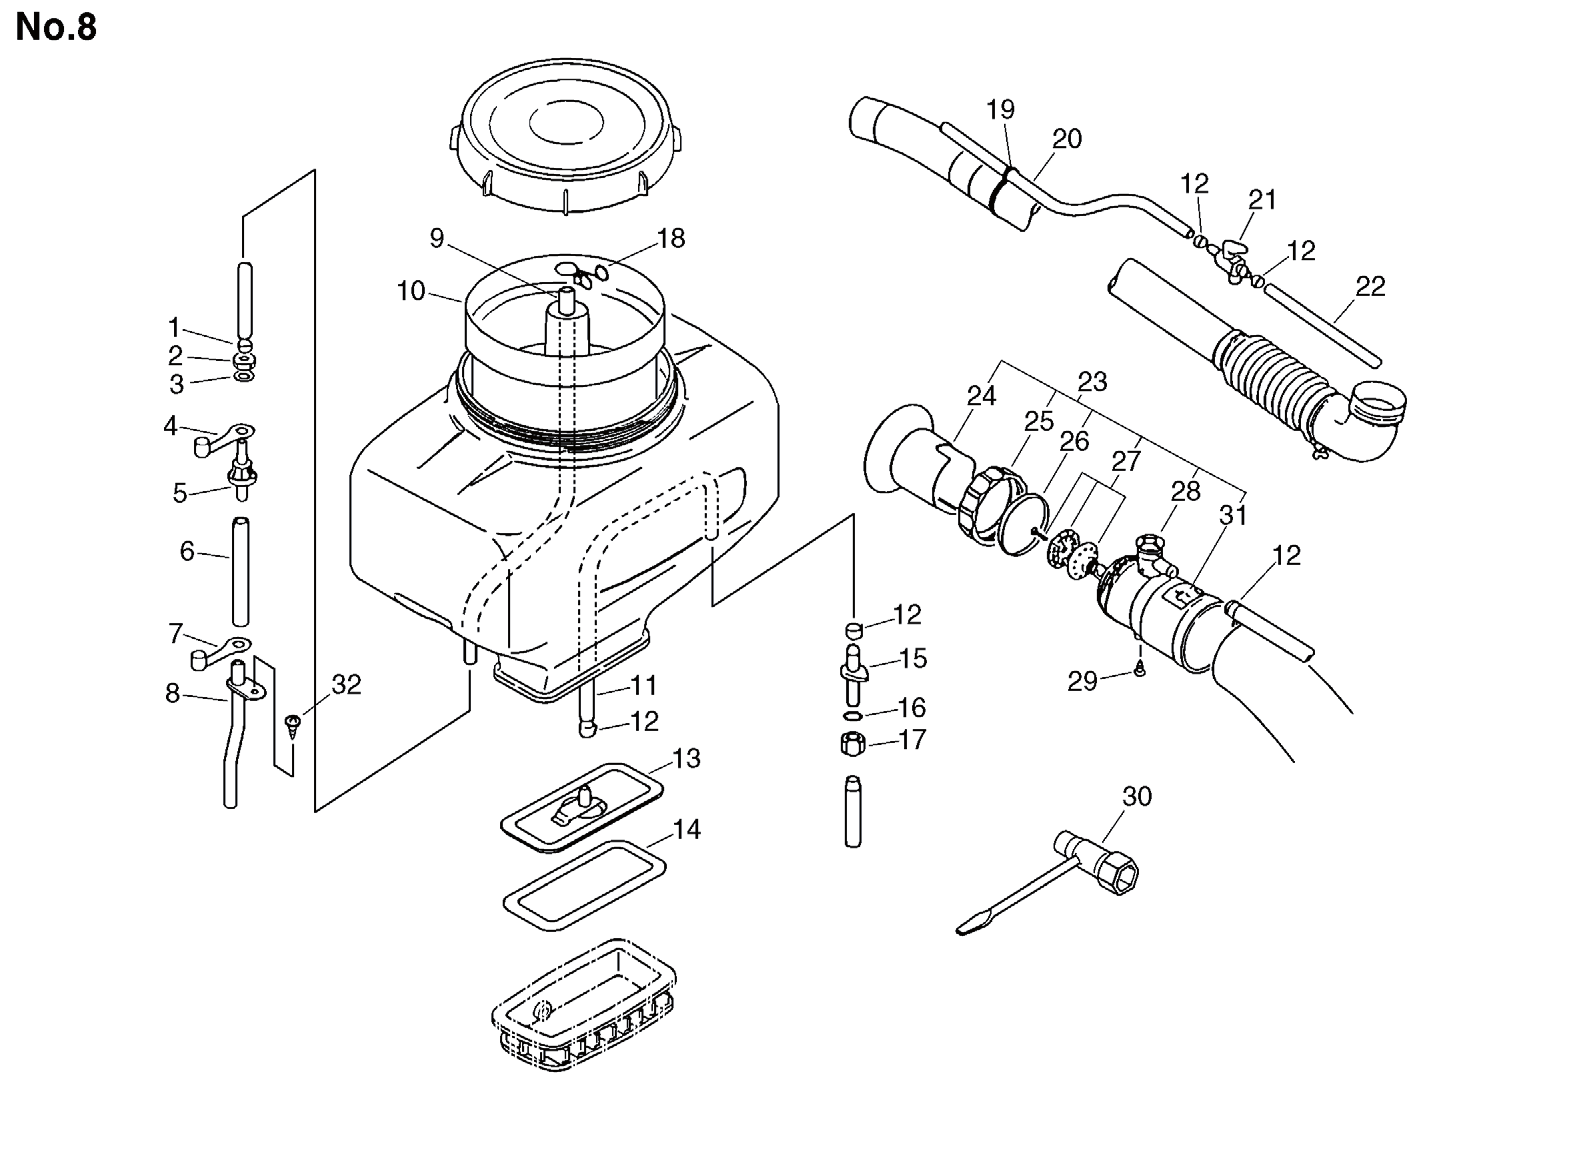 Group:Duster/Mist Blowers Model:DM-4610(SrNr 004334 and before) Section:Mist Blower, Tool Group:Duster/Mist Blowers Model:DM-4610(SrNr 004334 and before) Section:Carburetor 124200-06410 1 CARBURETOR